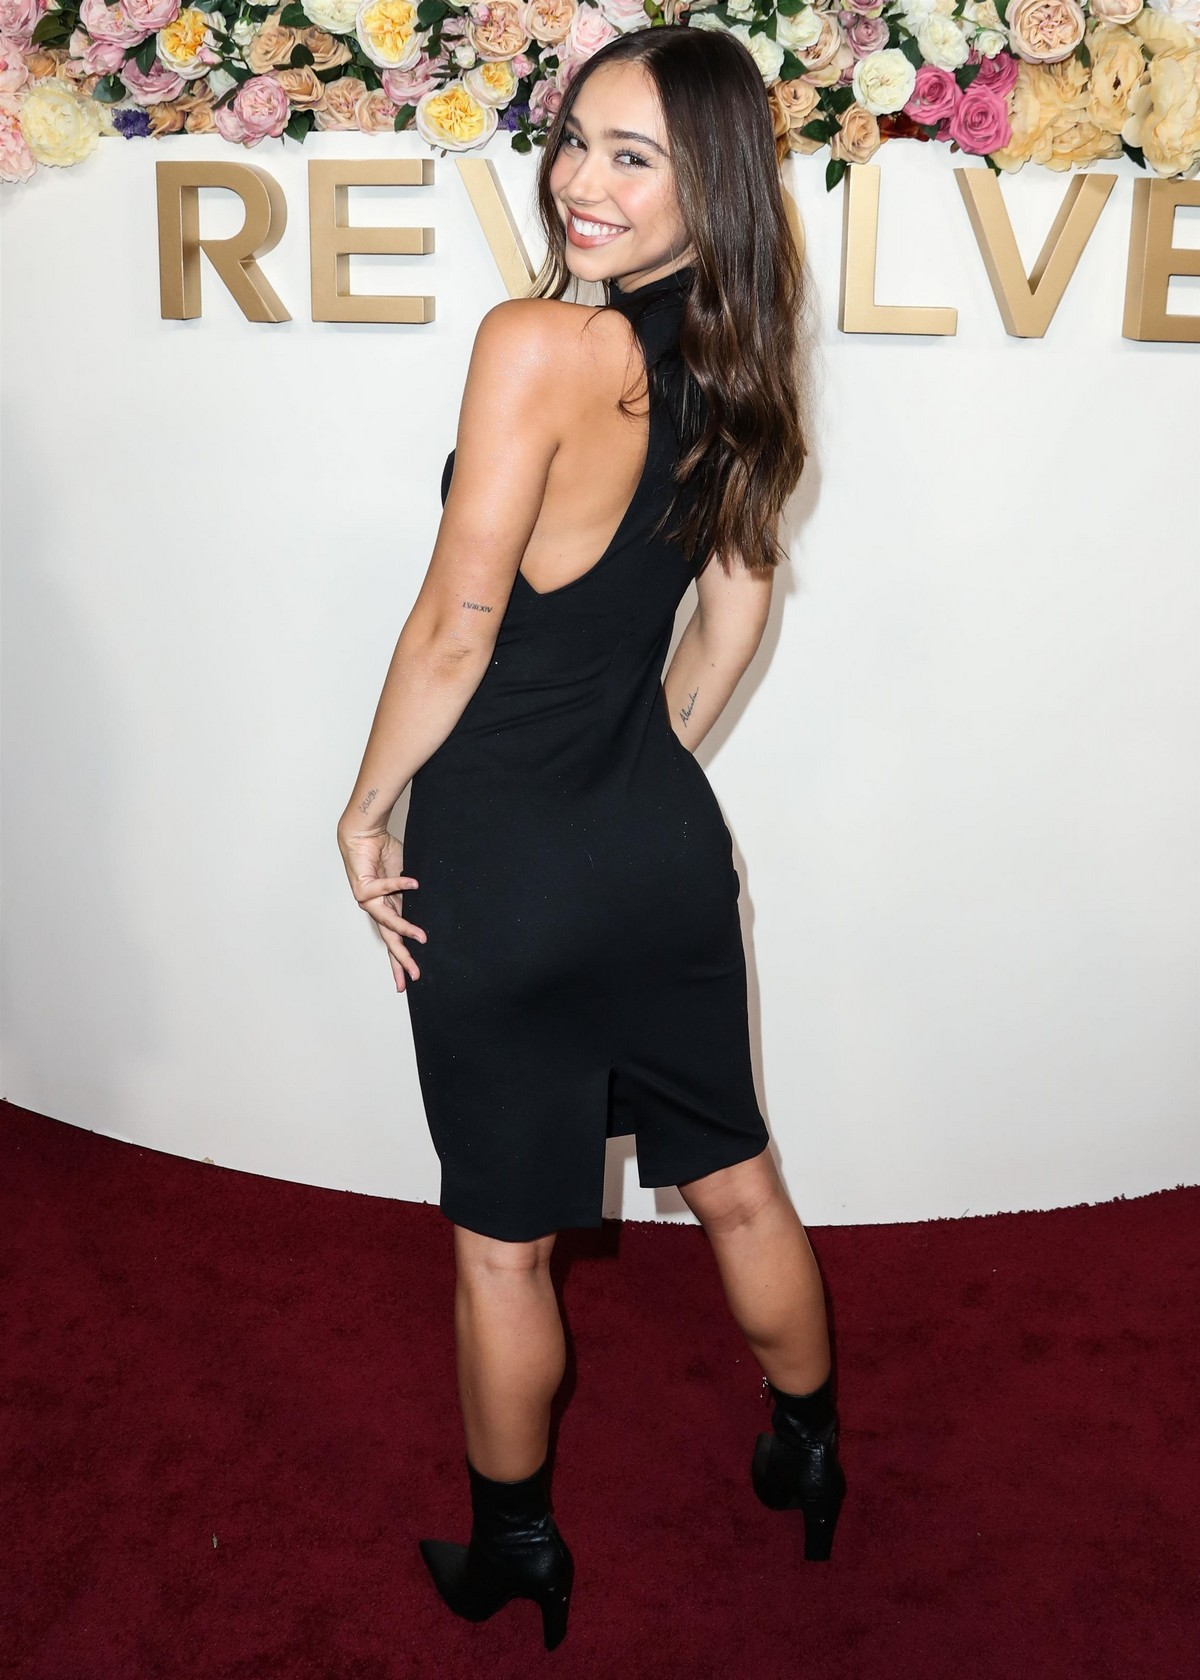 Alexis Ren in Black Dress at 3rd Annual #Revolve Awards in Hollywood 2019/11/15 13